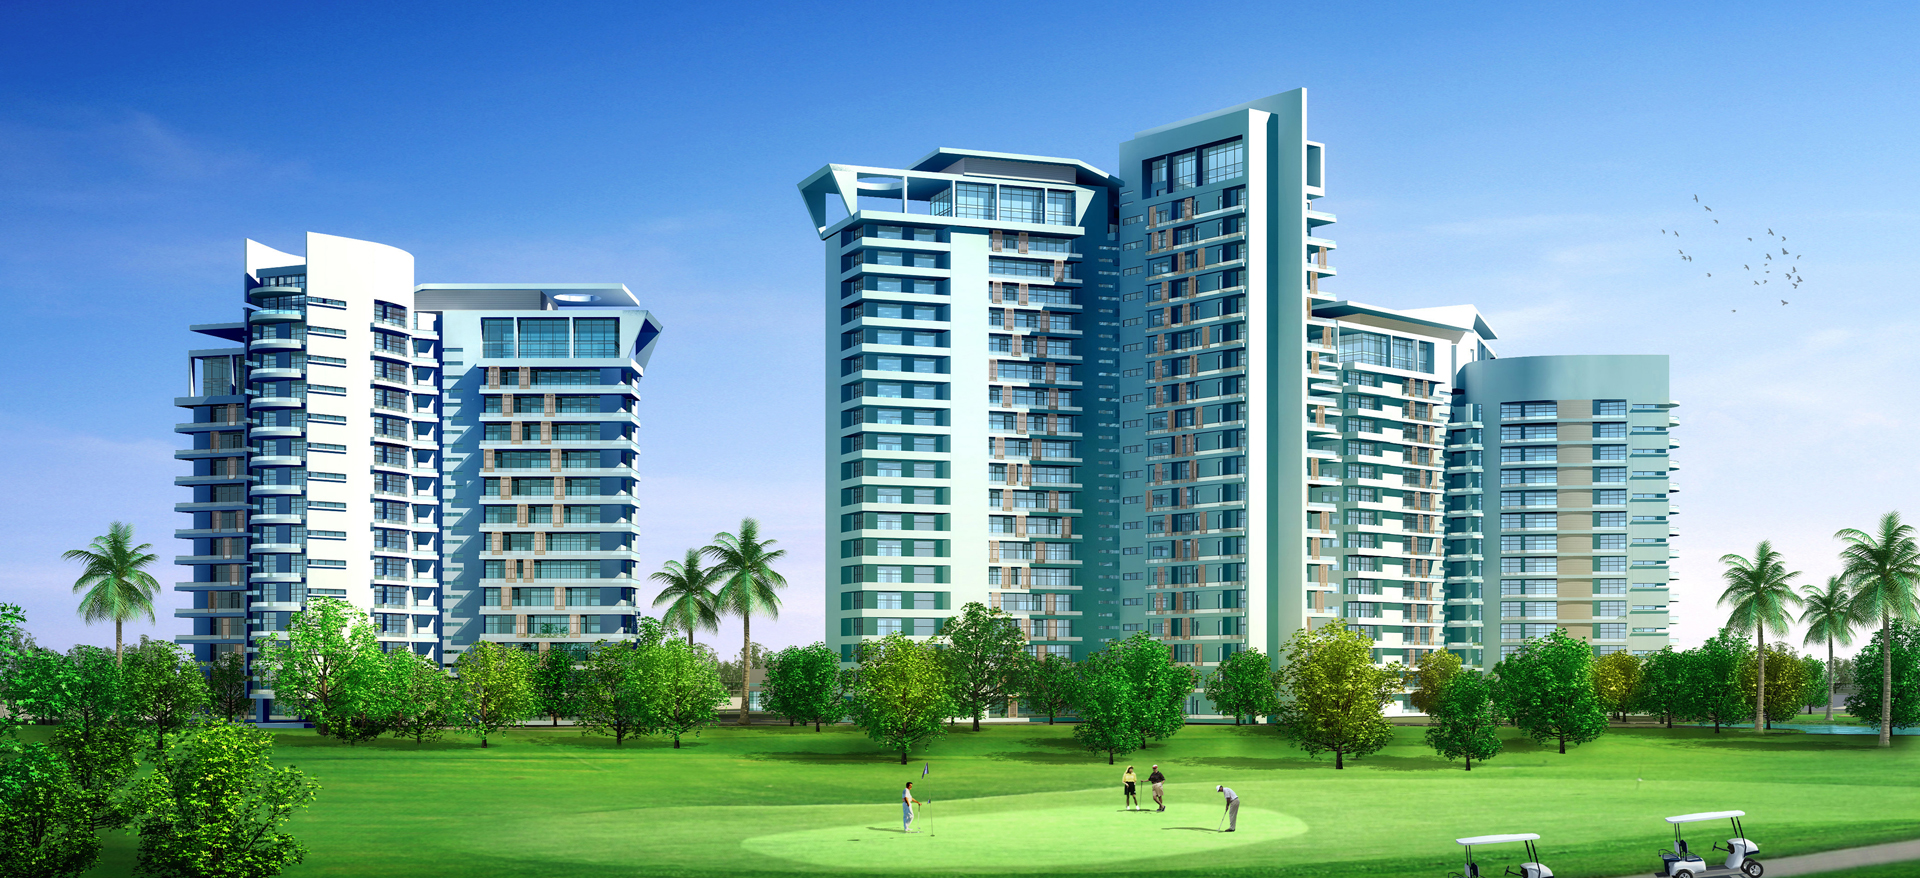 Golf View Apartments, Uttar Pradesh, India